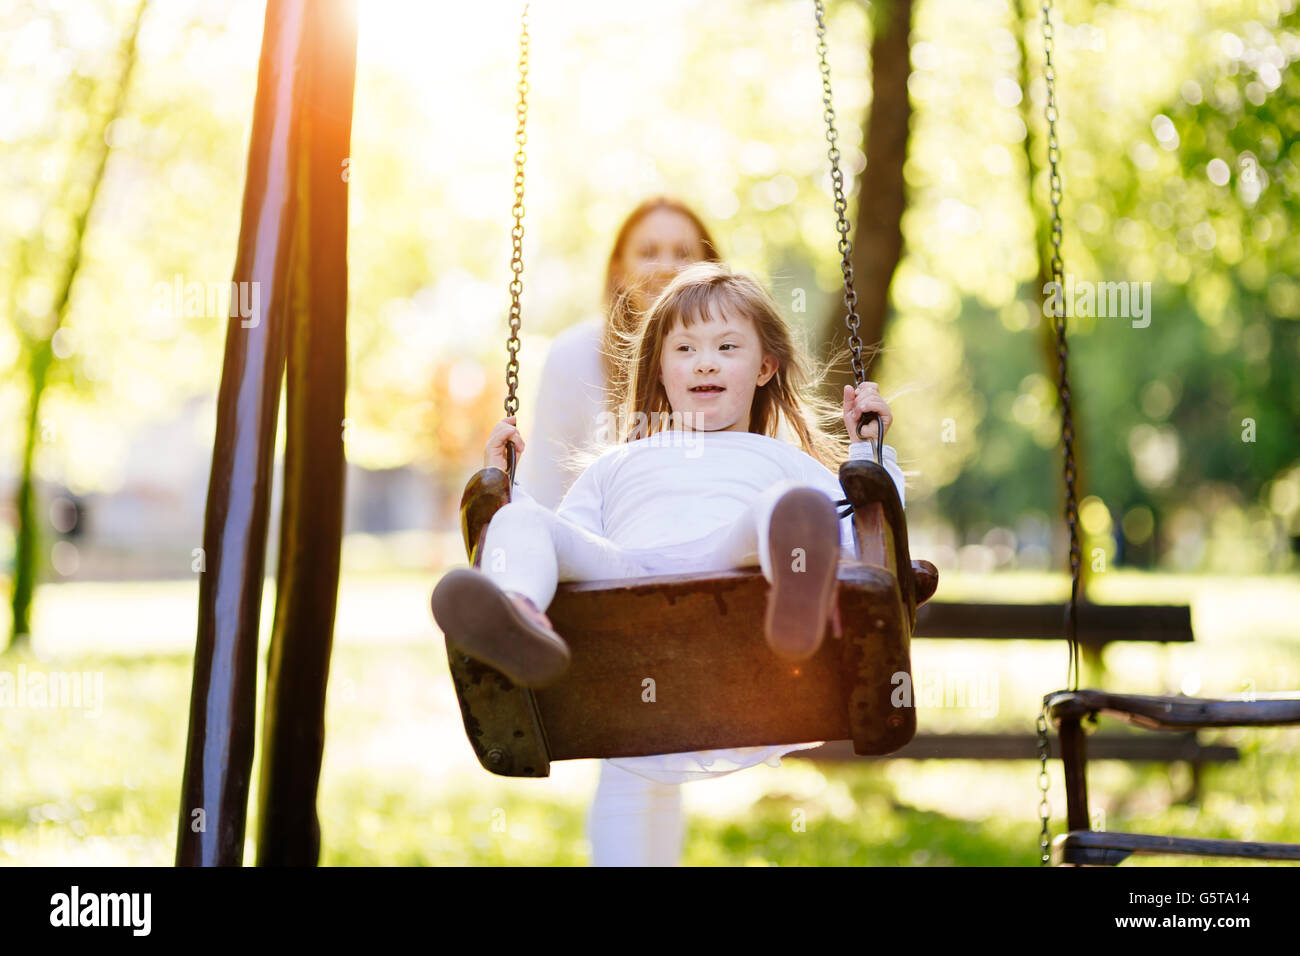 Disabled child enjoying the swing outdoors with sister - Stock Image